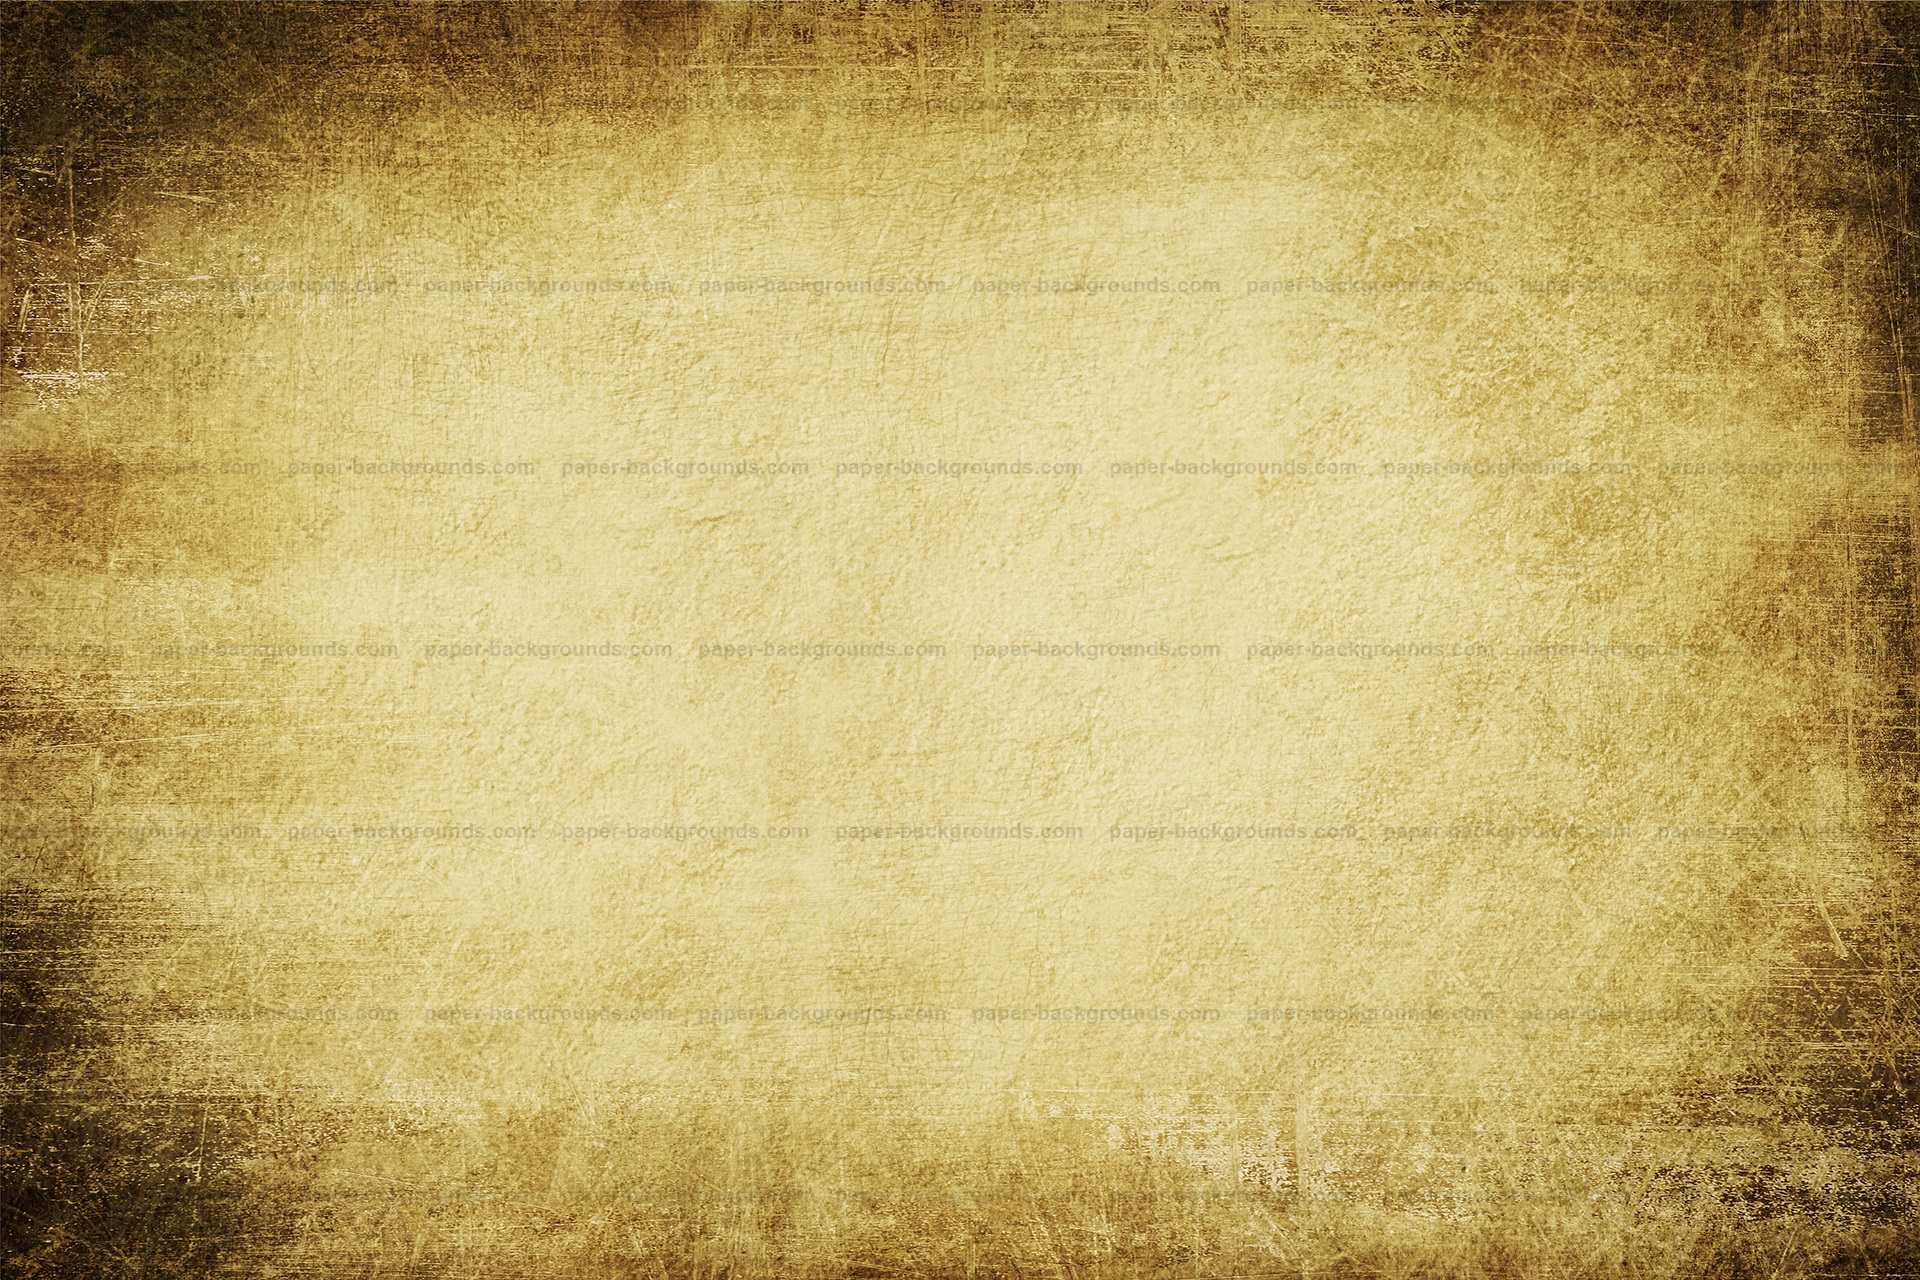 Yellow Grunge Wall Texture Background HD « Paper Backgrounds: funny-pictures.picphotos.net/background-texture-wall/freecodesource...